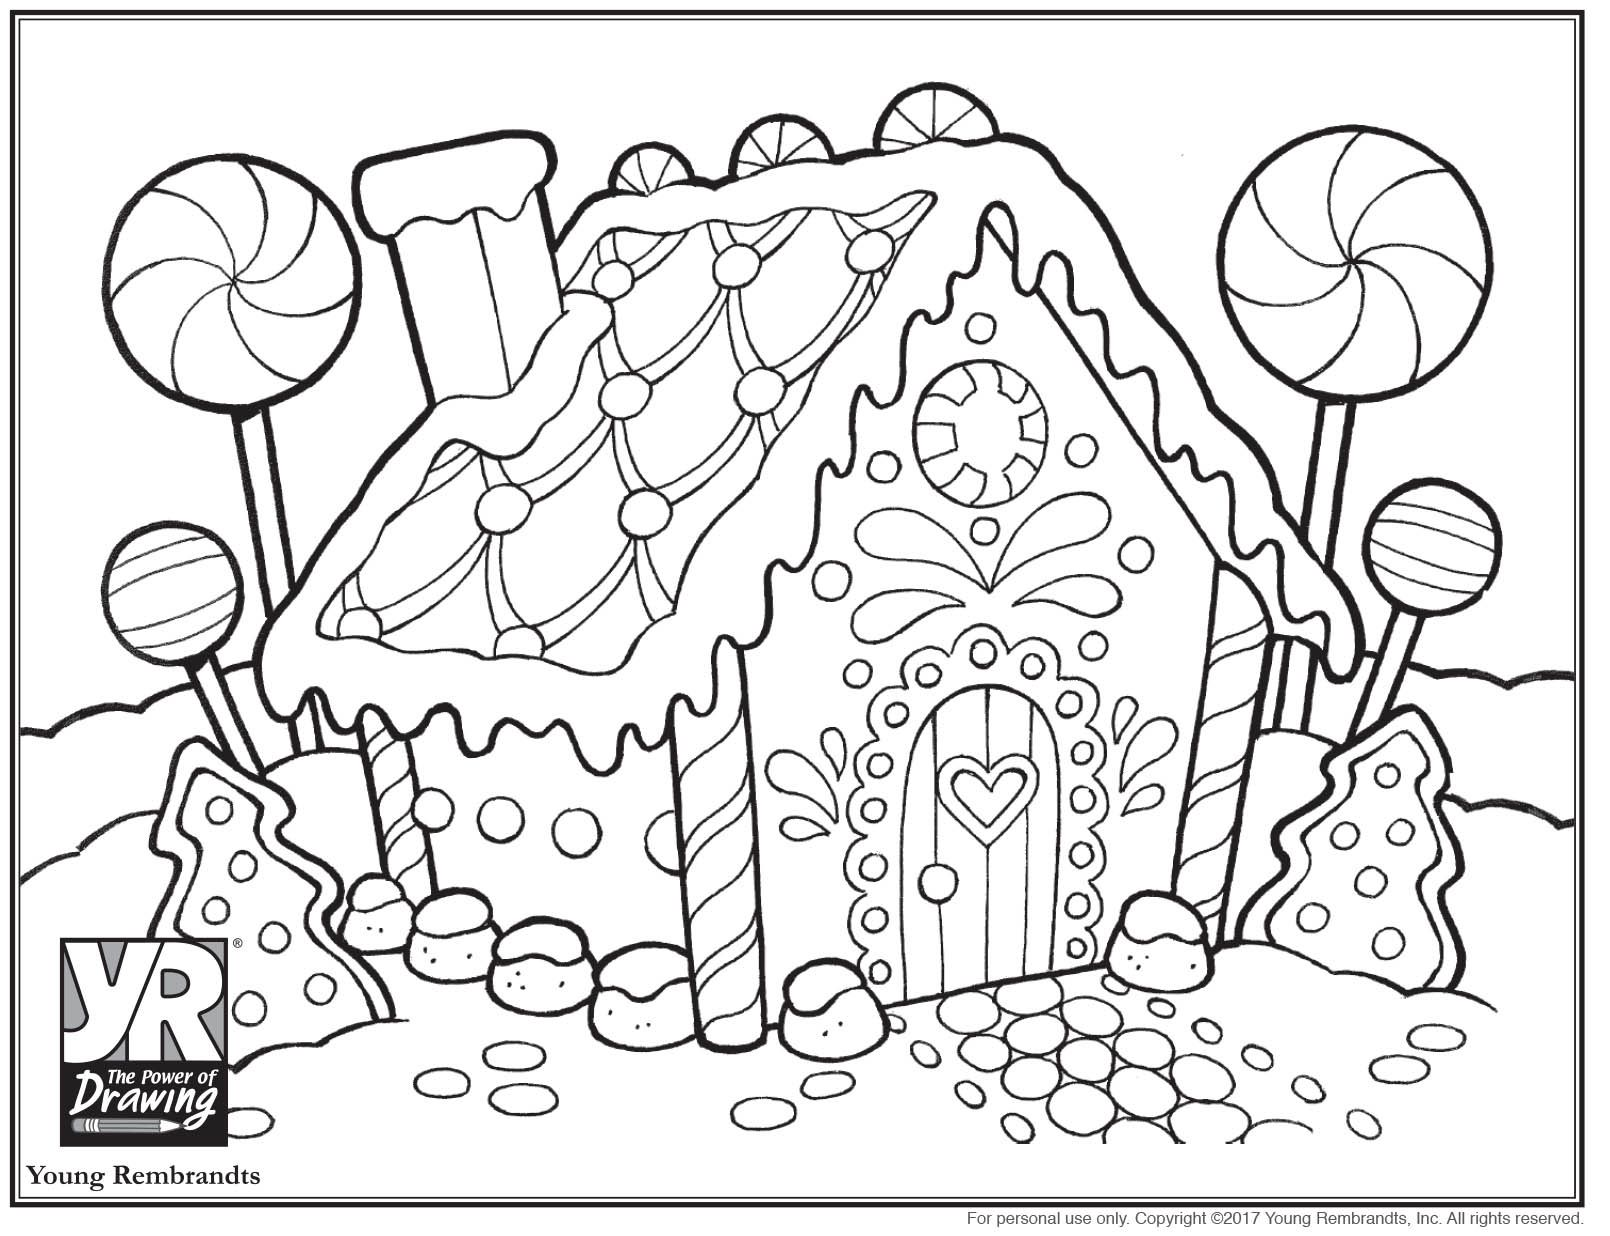 Gingerbread House Coloring Pages To Print Free Coloring Books Gingerbread Man Coloring Page Christmas Coloring Pages Candy Coloring Pages